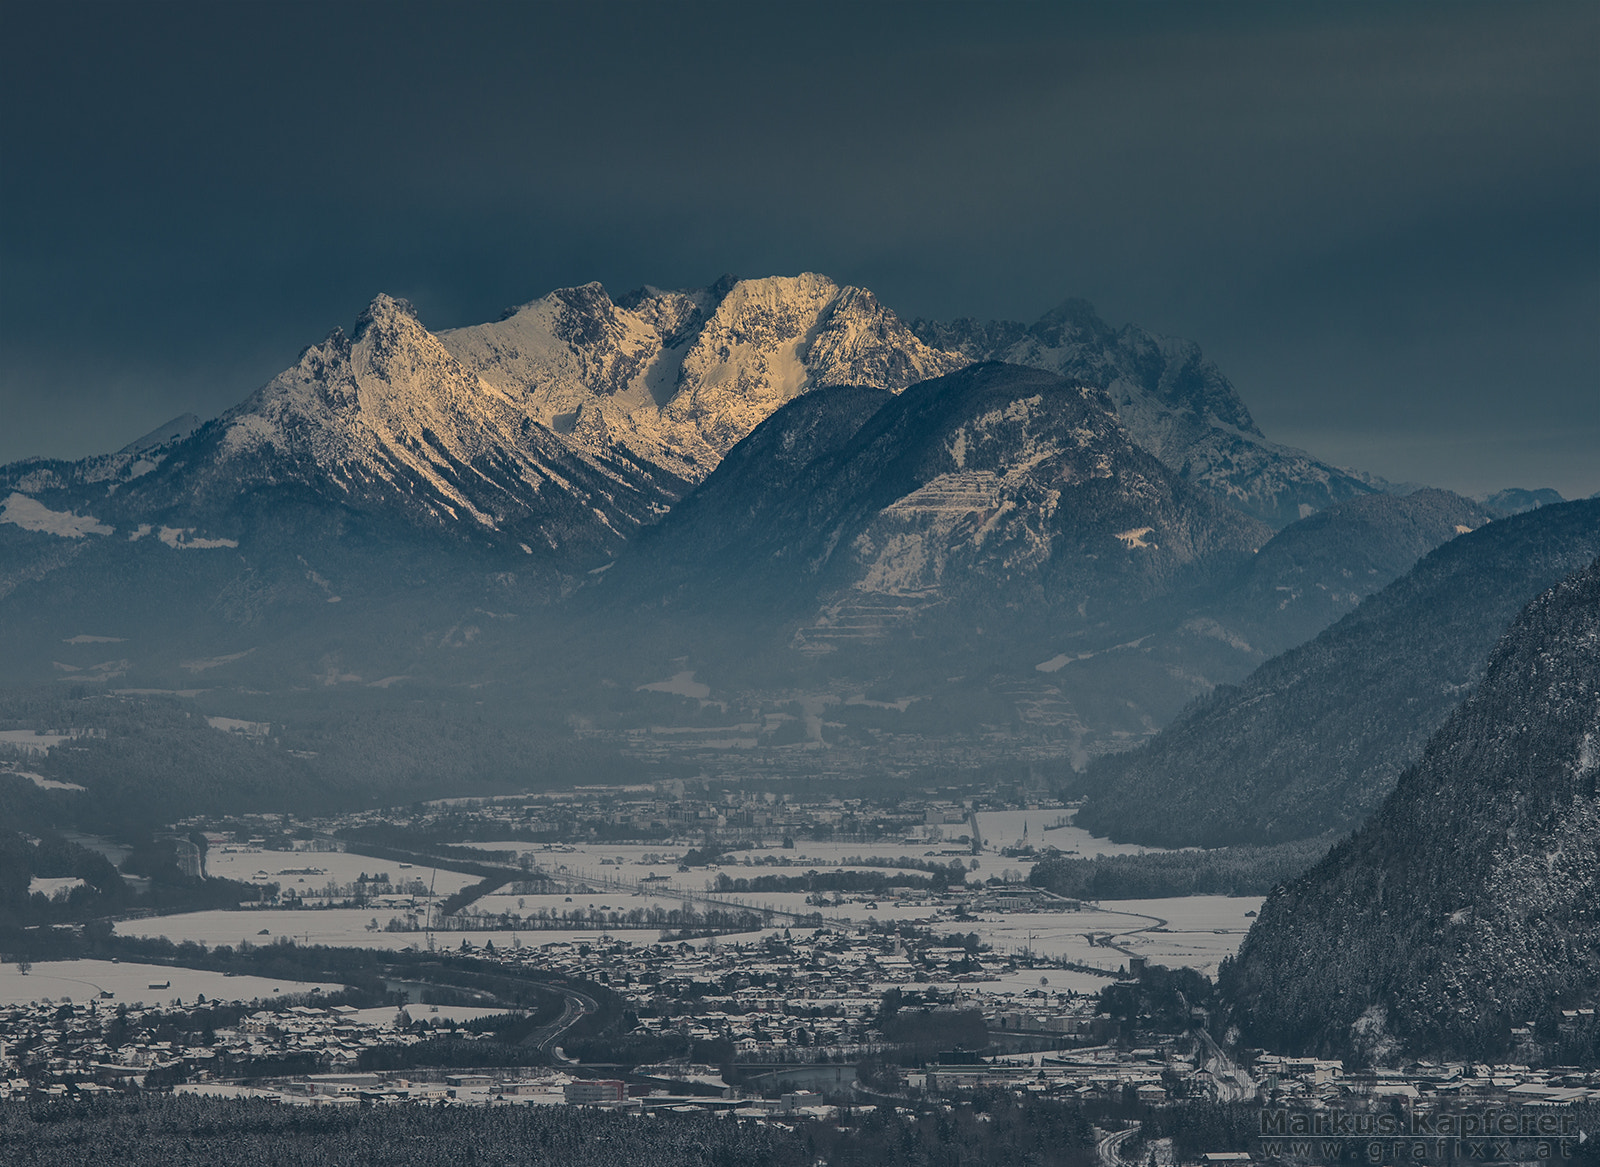 Photograph Mountains in Tirol by Markus Kapferer on 500px